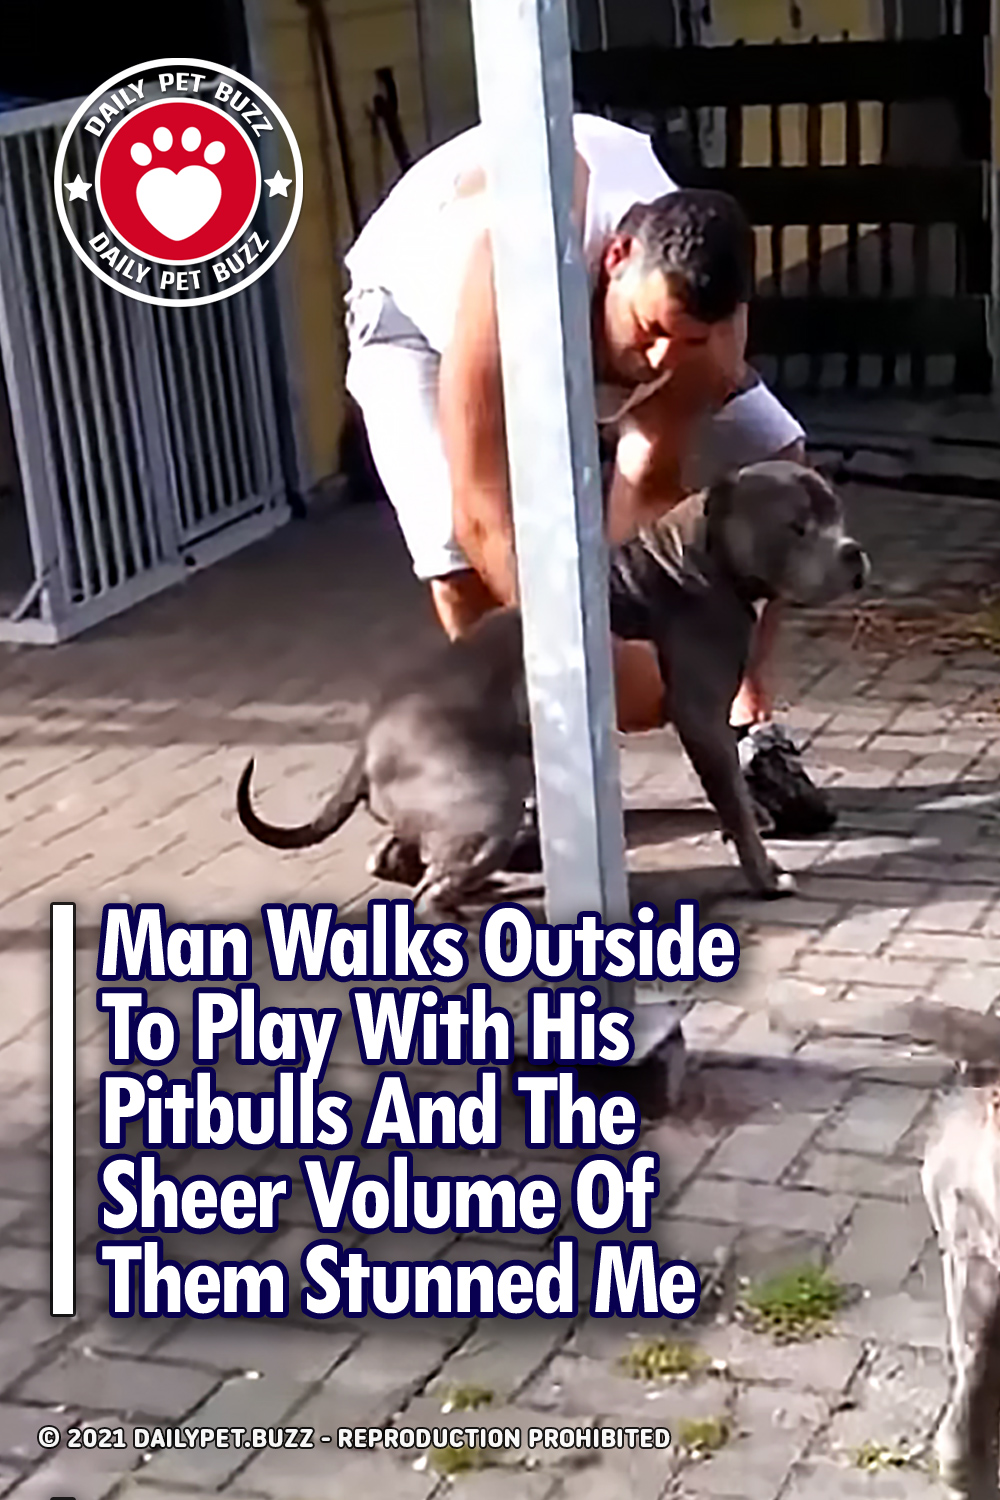 Man Walks Outside To Play With His Pitbulls And The Sheer Volume Of Them Stunned Me